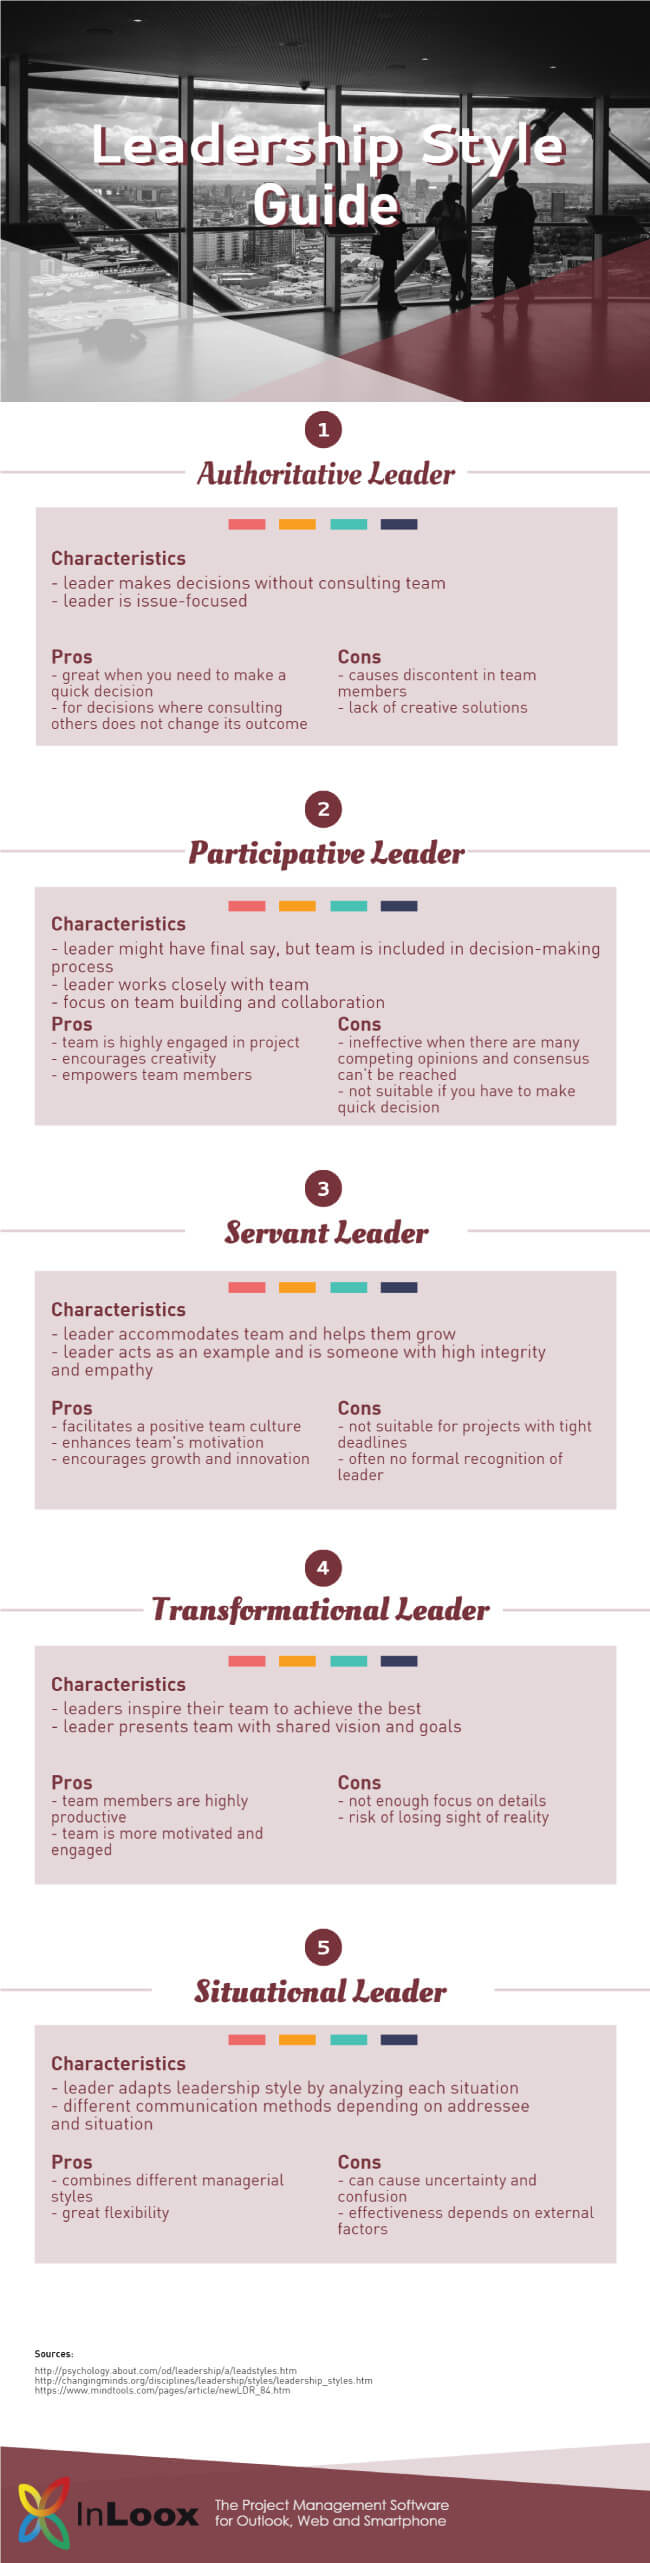 Image titled How to Energize Your Team with These 5 Leadership Styles